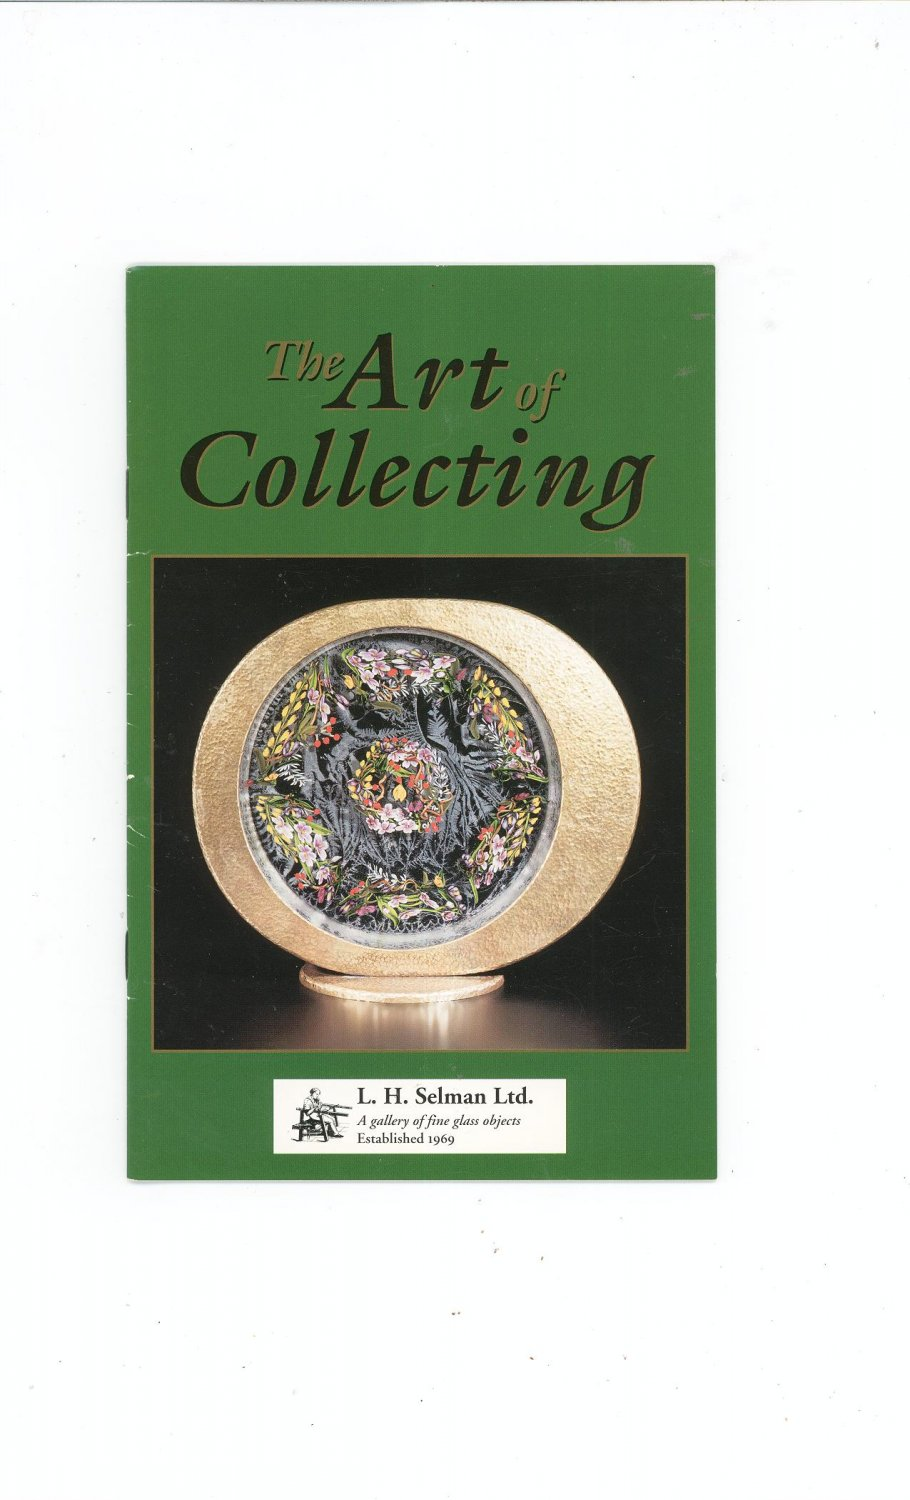 The Art Of Collecting Catalog / Brochure by L. H. Selman Ltd. Paperweights